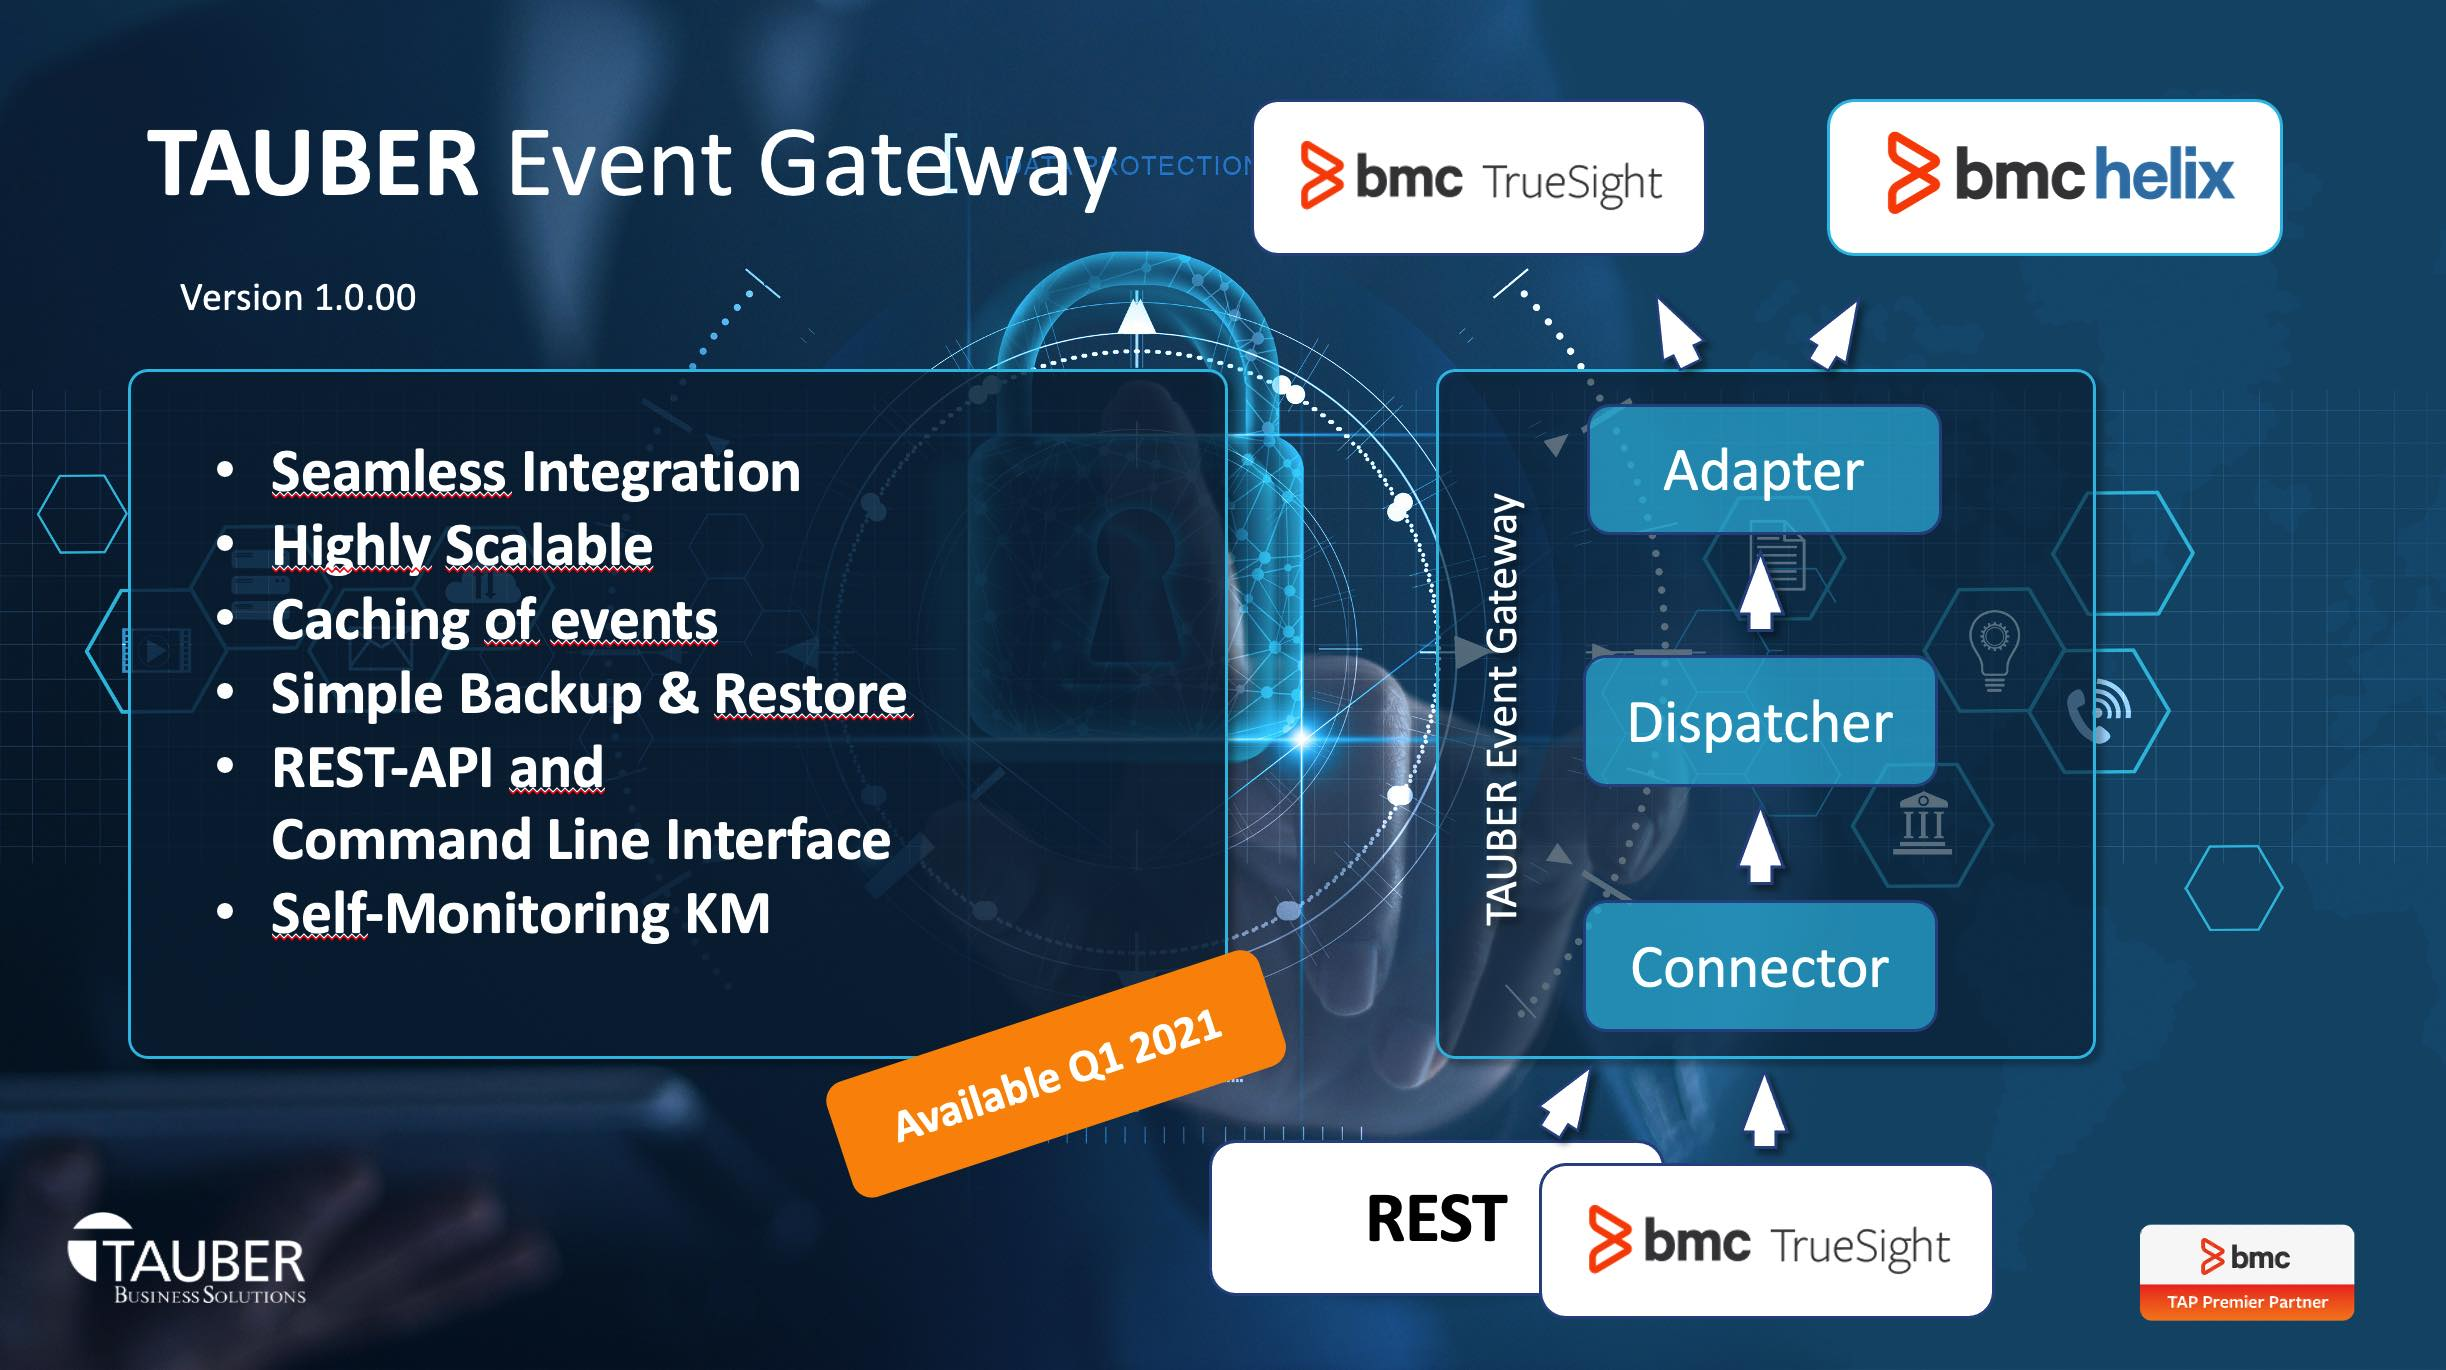 TAUBER Event Gateway / Version 1.0.00